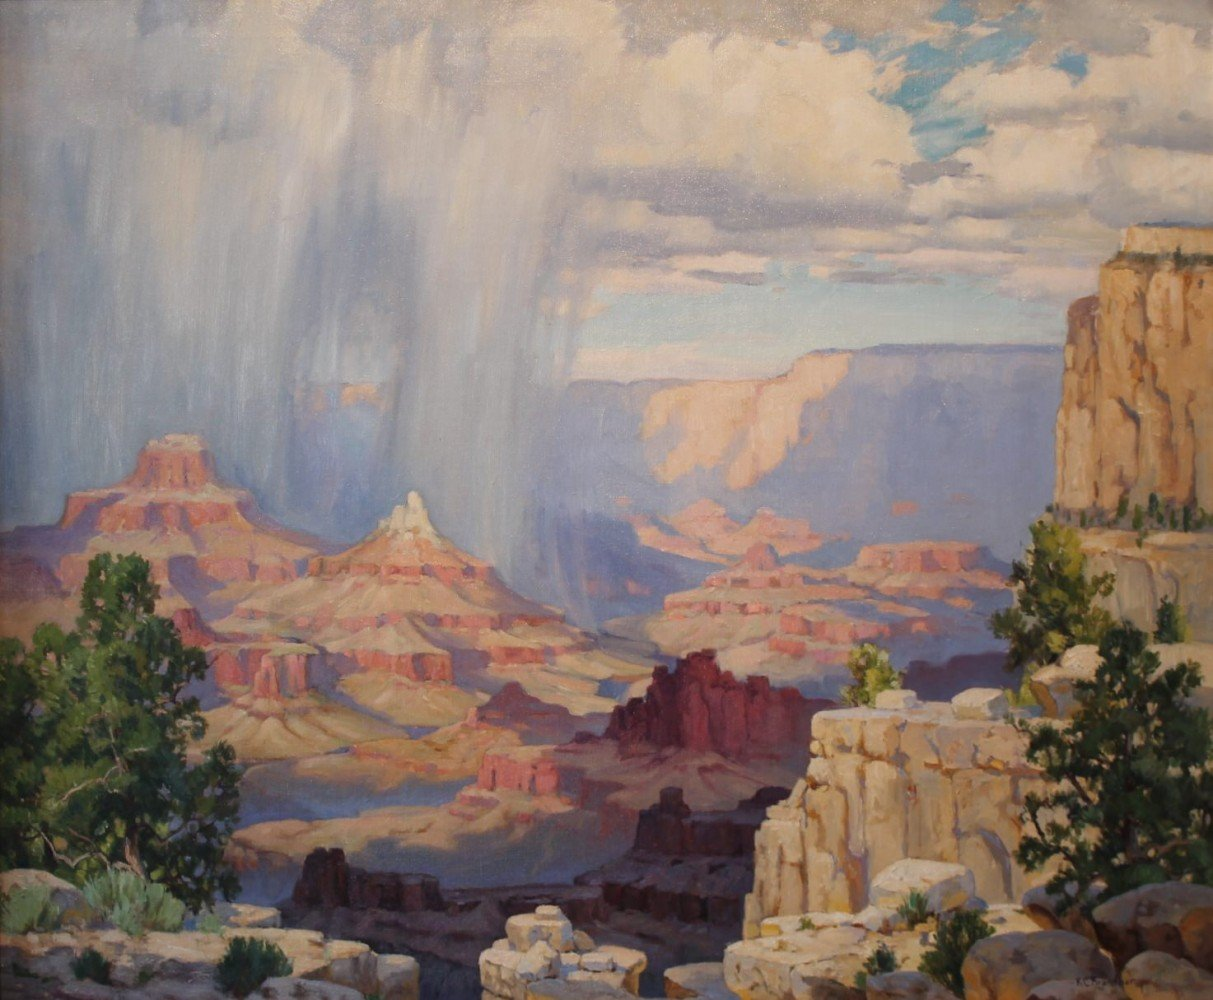 Grand Canyon by Karl C. Brandner